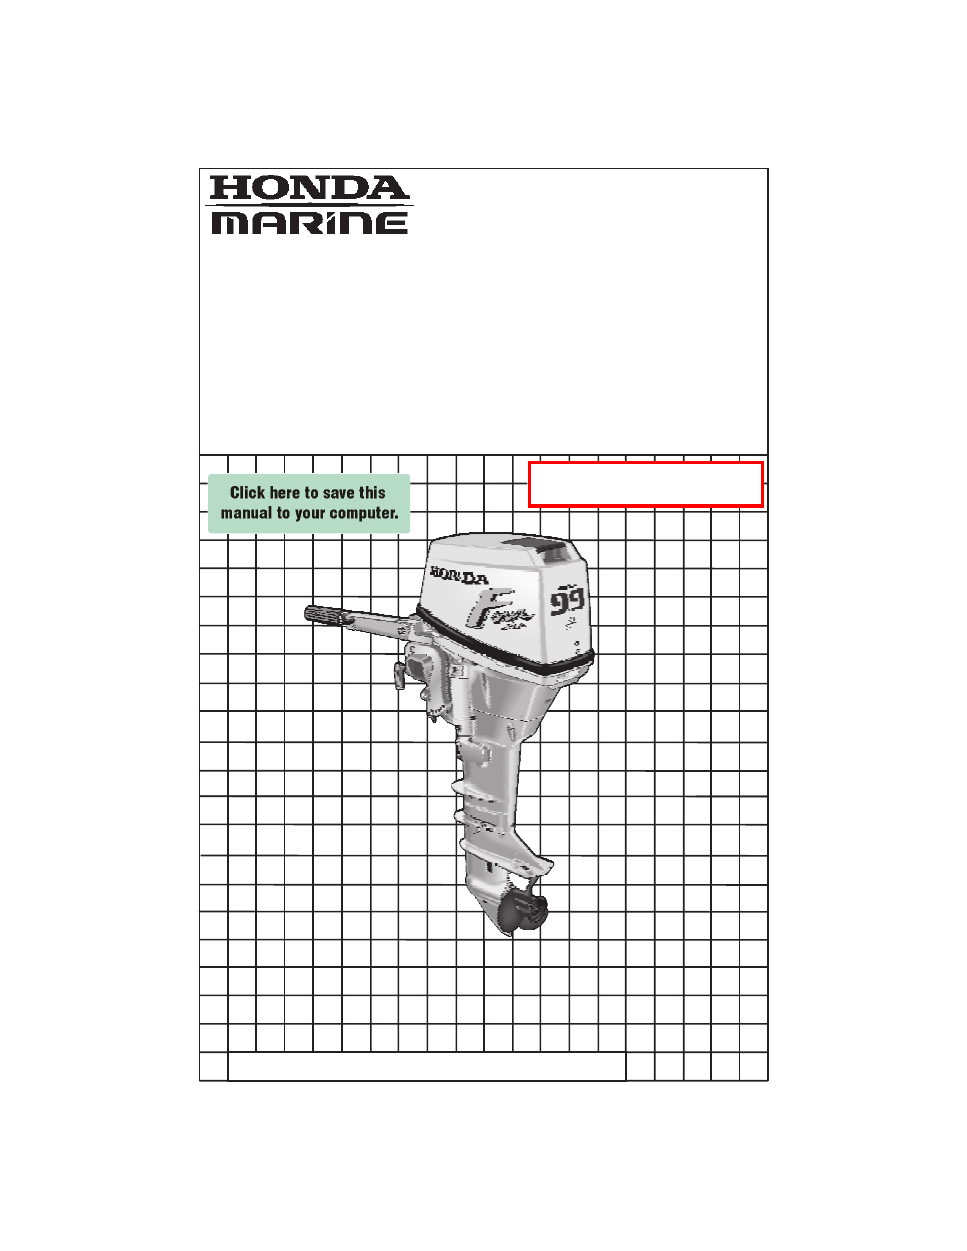 honda bf15 baas 1300001 1599999 owner s manual free pdf download rh manualagent com Outboard Motor Wiring Diagram 15 HP Evinrude Parts